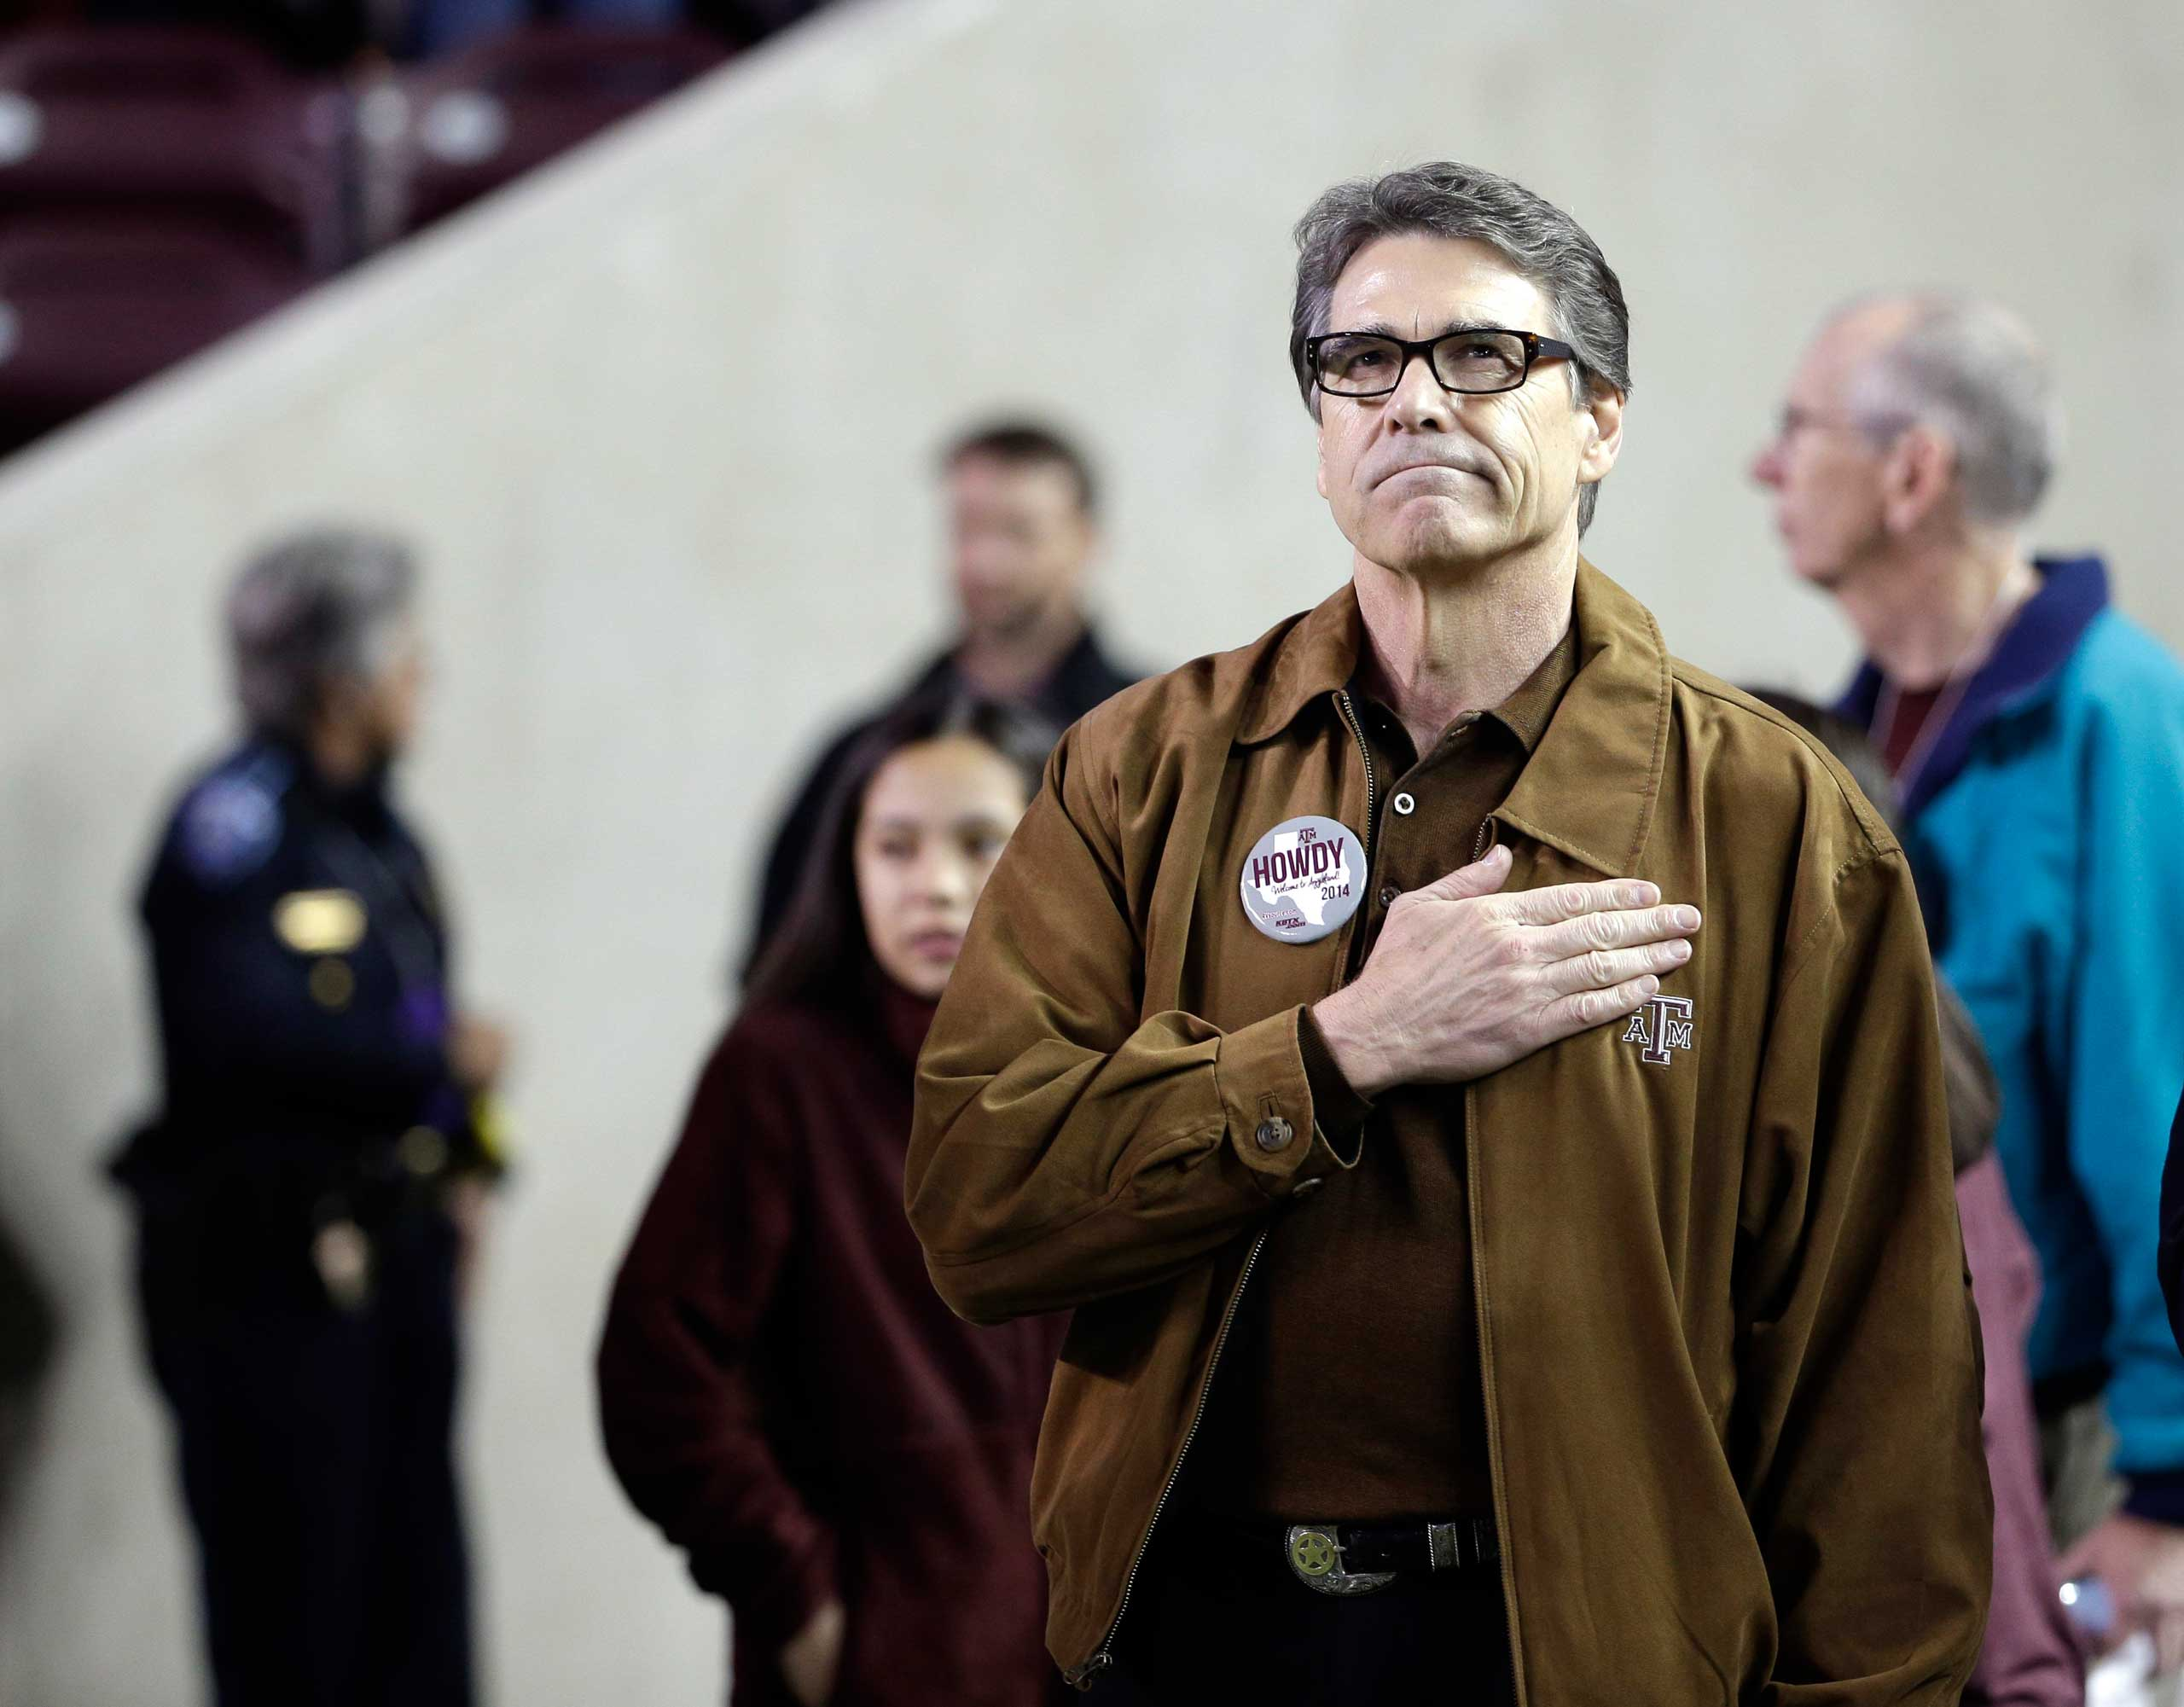 <b>Rick Perry</b> Texas Gov. Rick Perry looks powerfully patriotic during the National Anthem before an NCAA college football game on Nov. 27, 2014, in College Station, Texas.